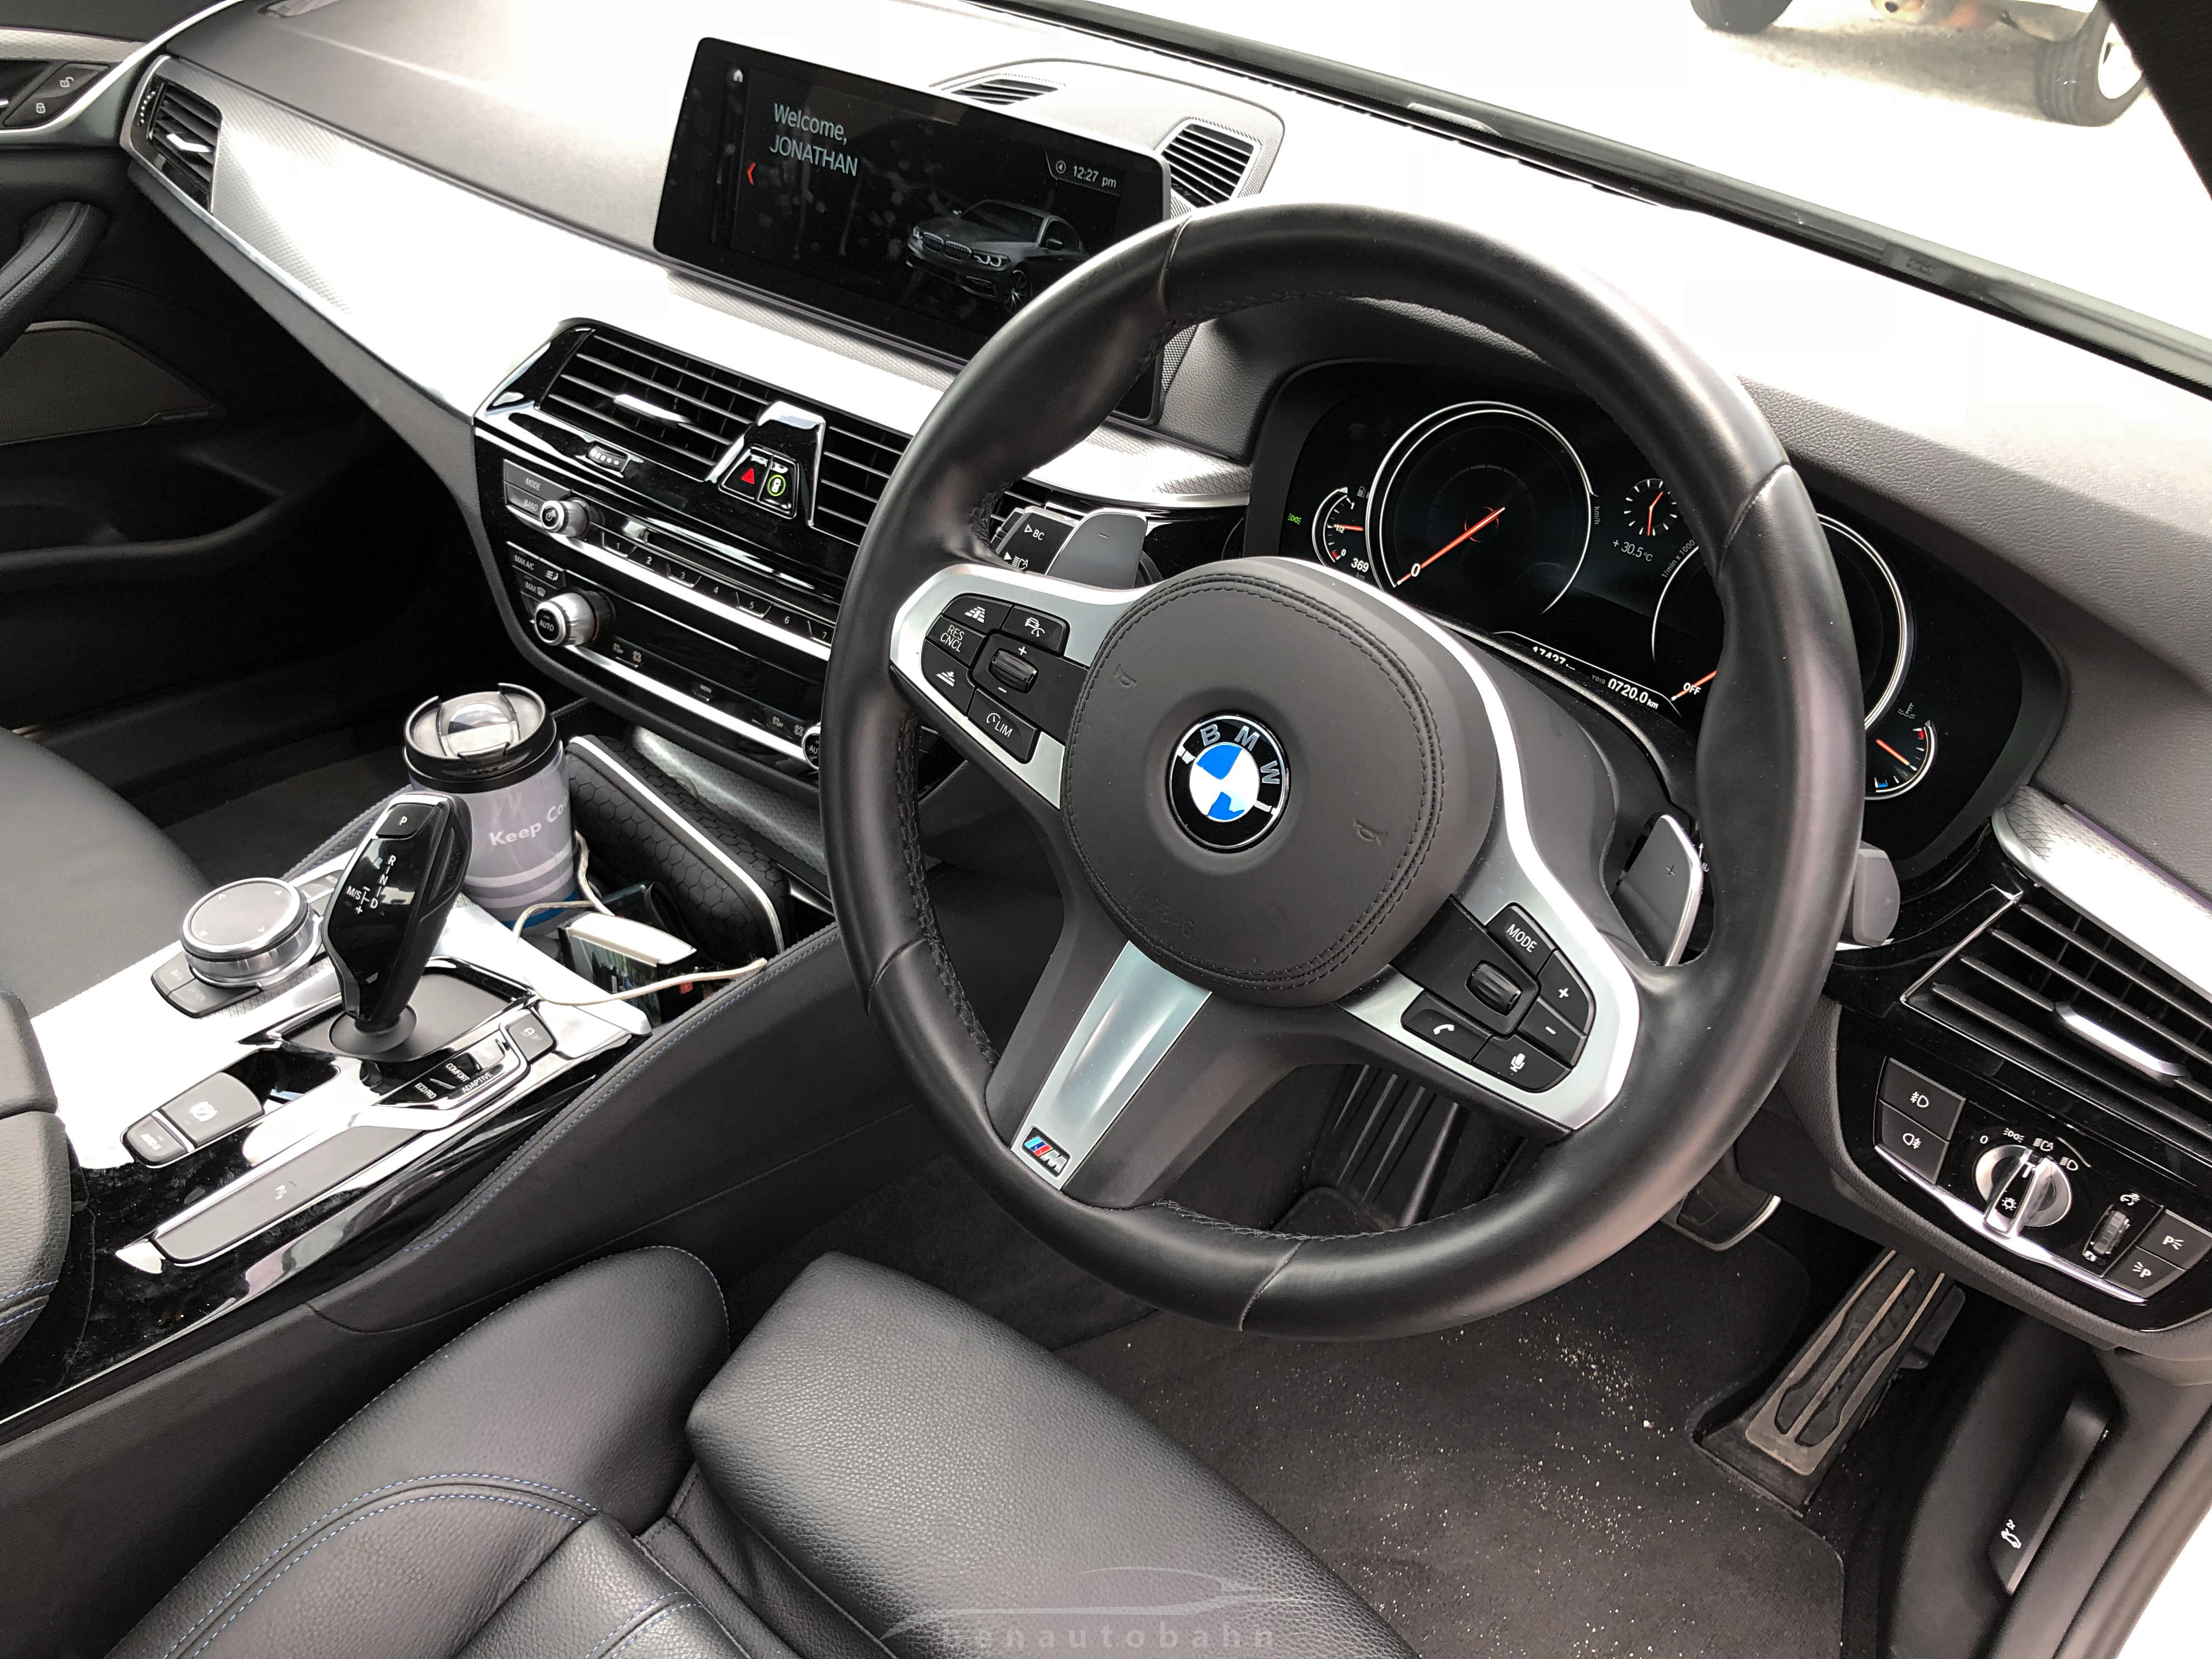 Sporty Suit & Tie  The BMW 530i M Performance Review